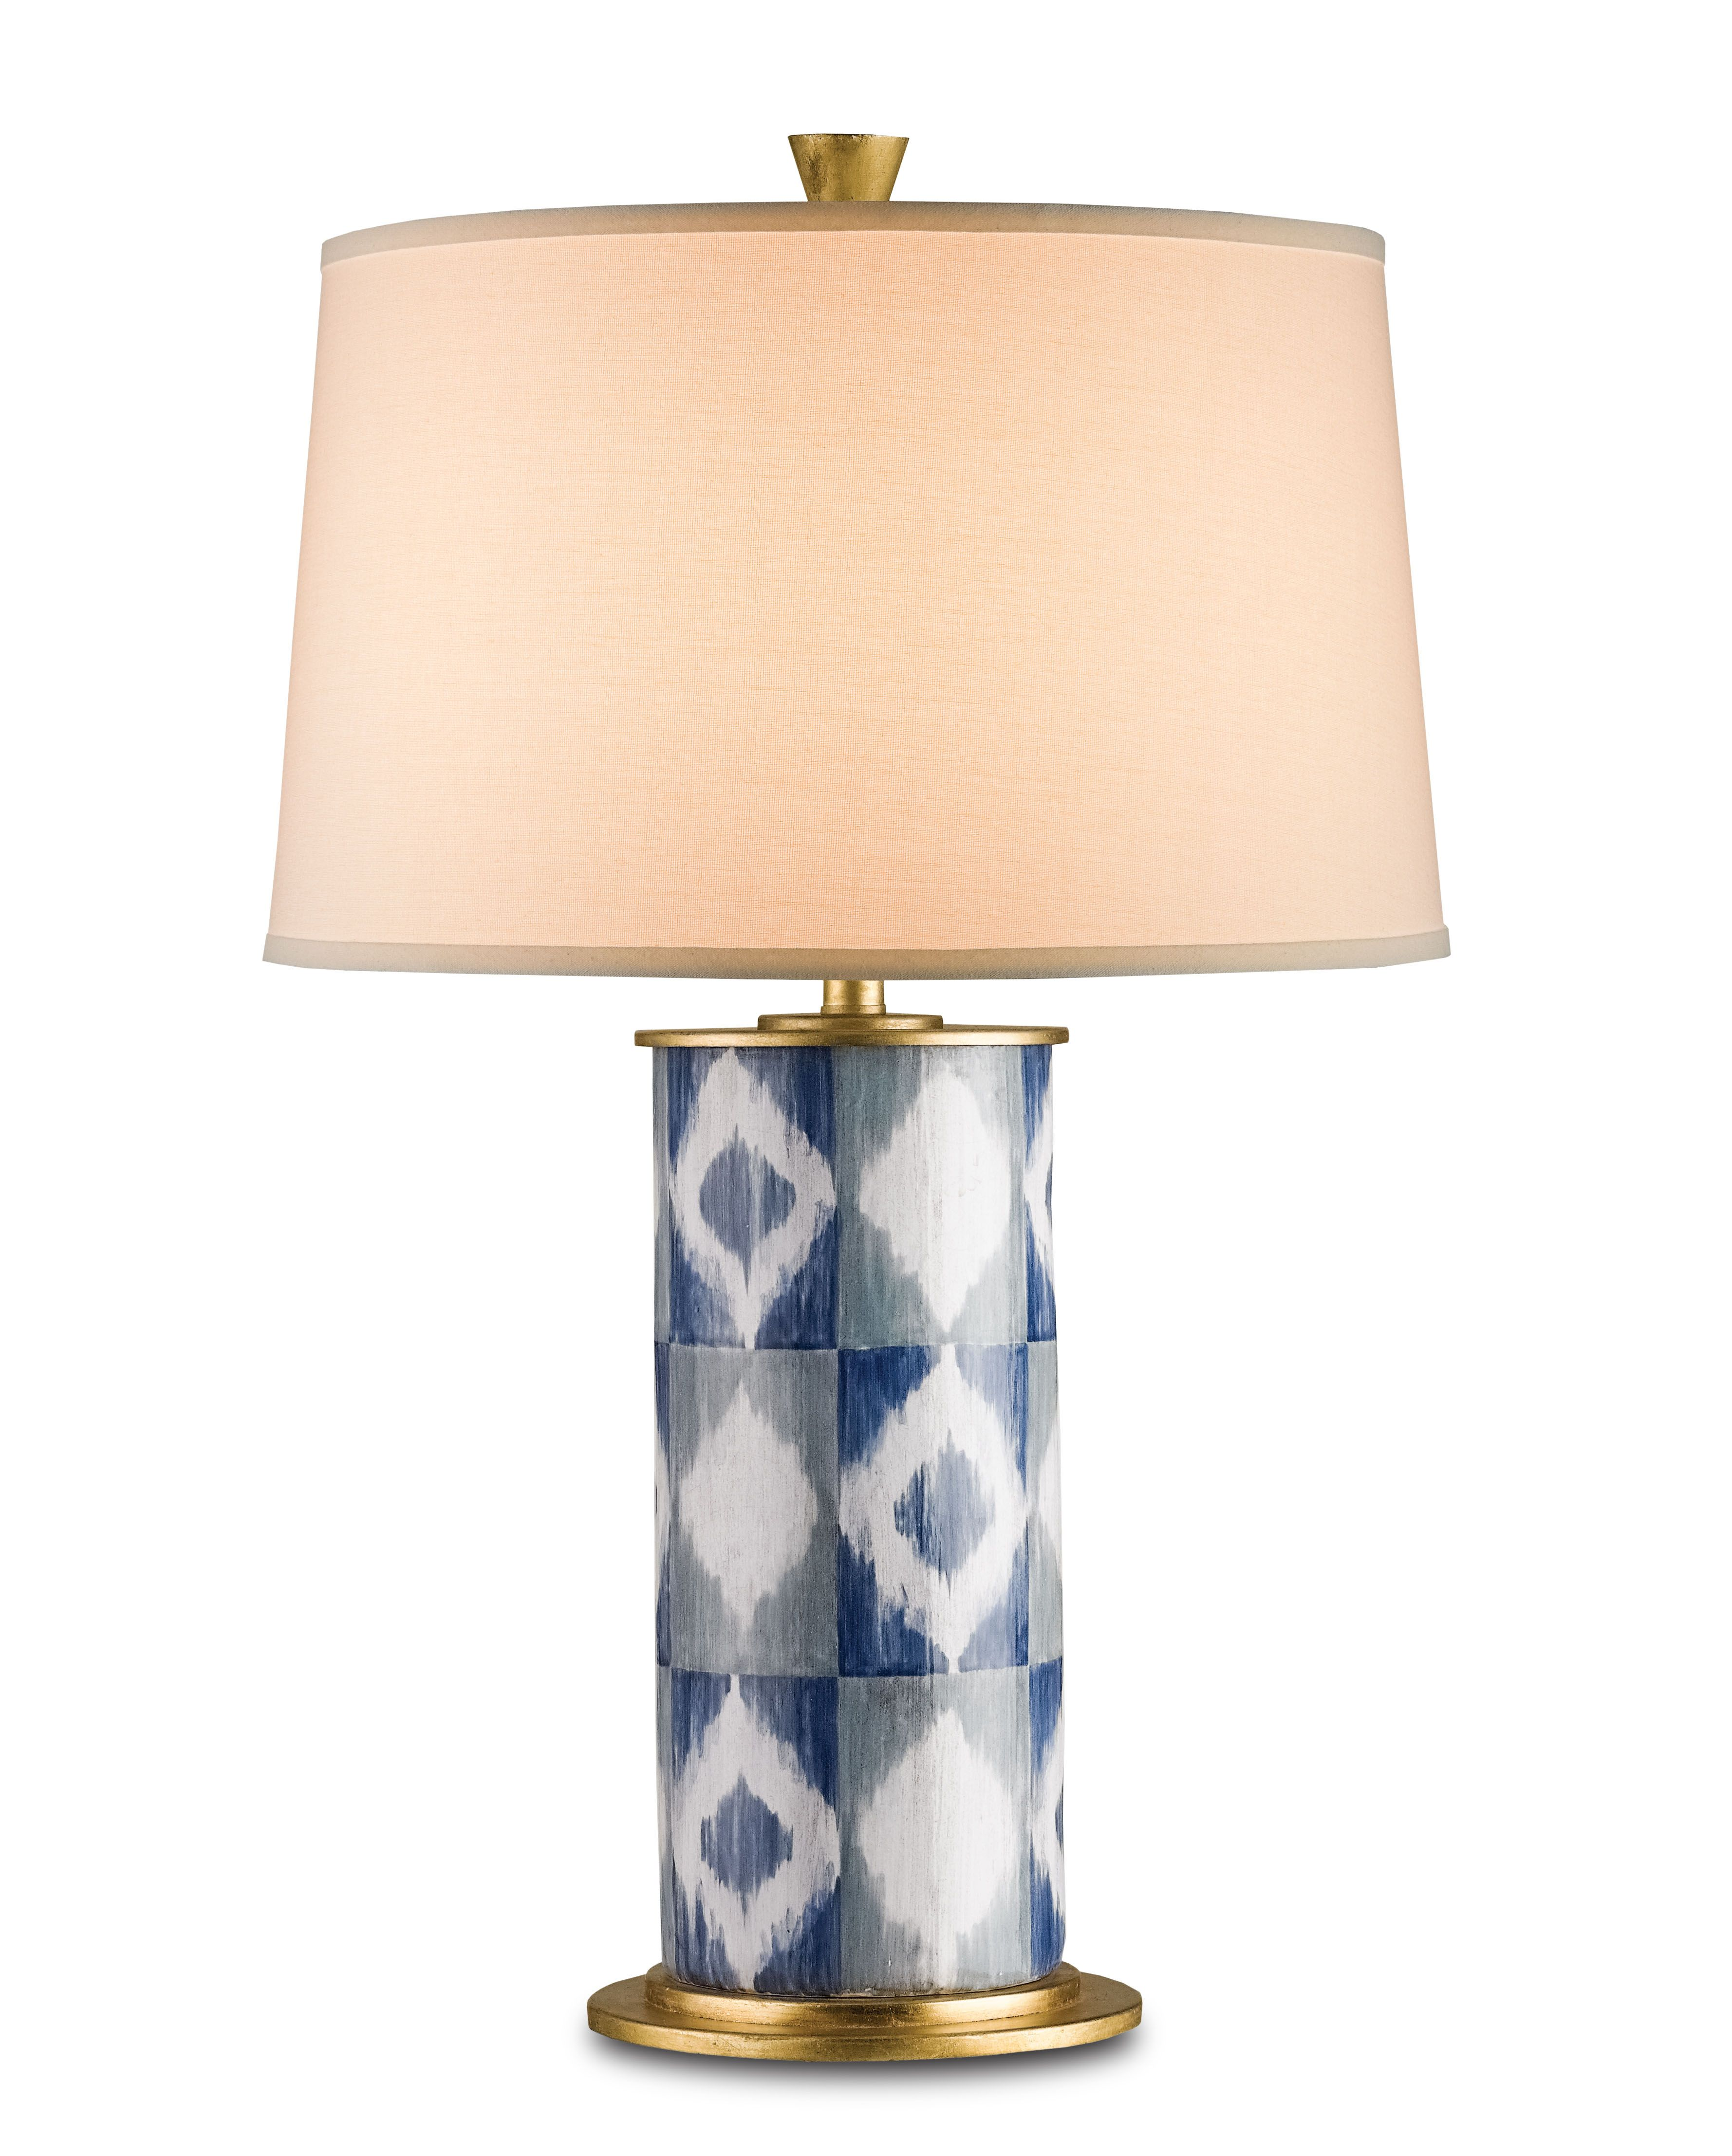 The Patterson Table Lamp By Currey Company Grey Table Lamps Contemporary Table Lamps Table Lamp Lighting